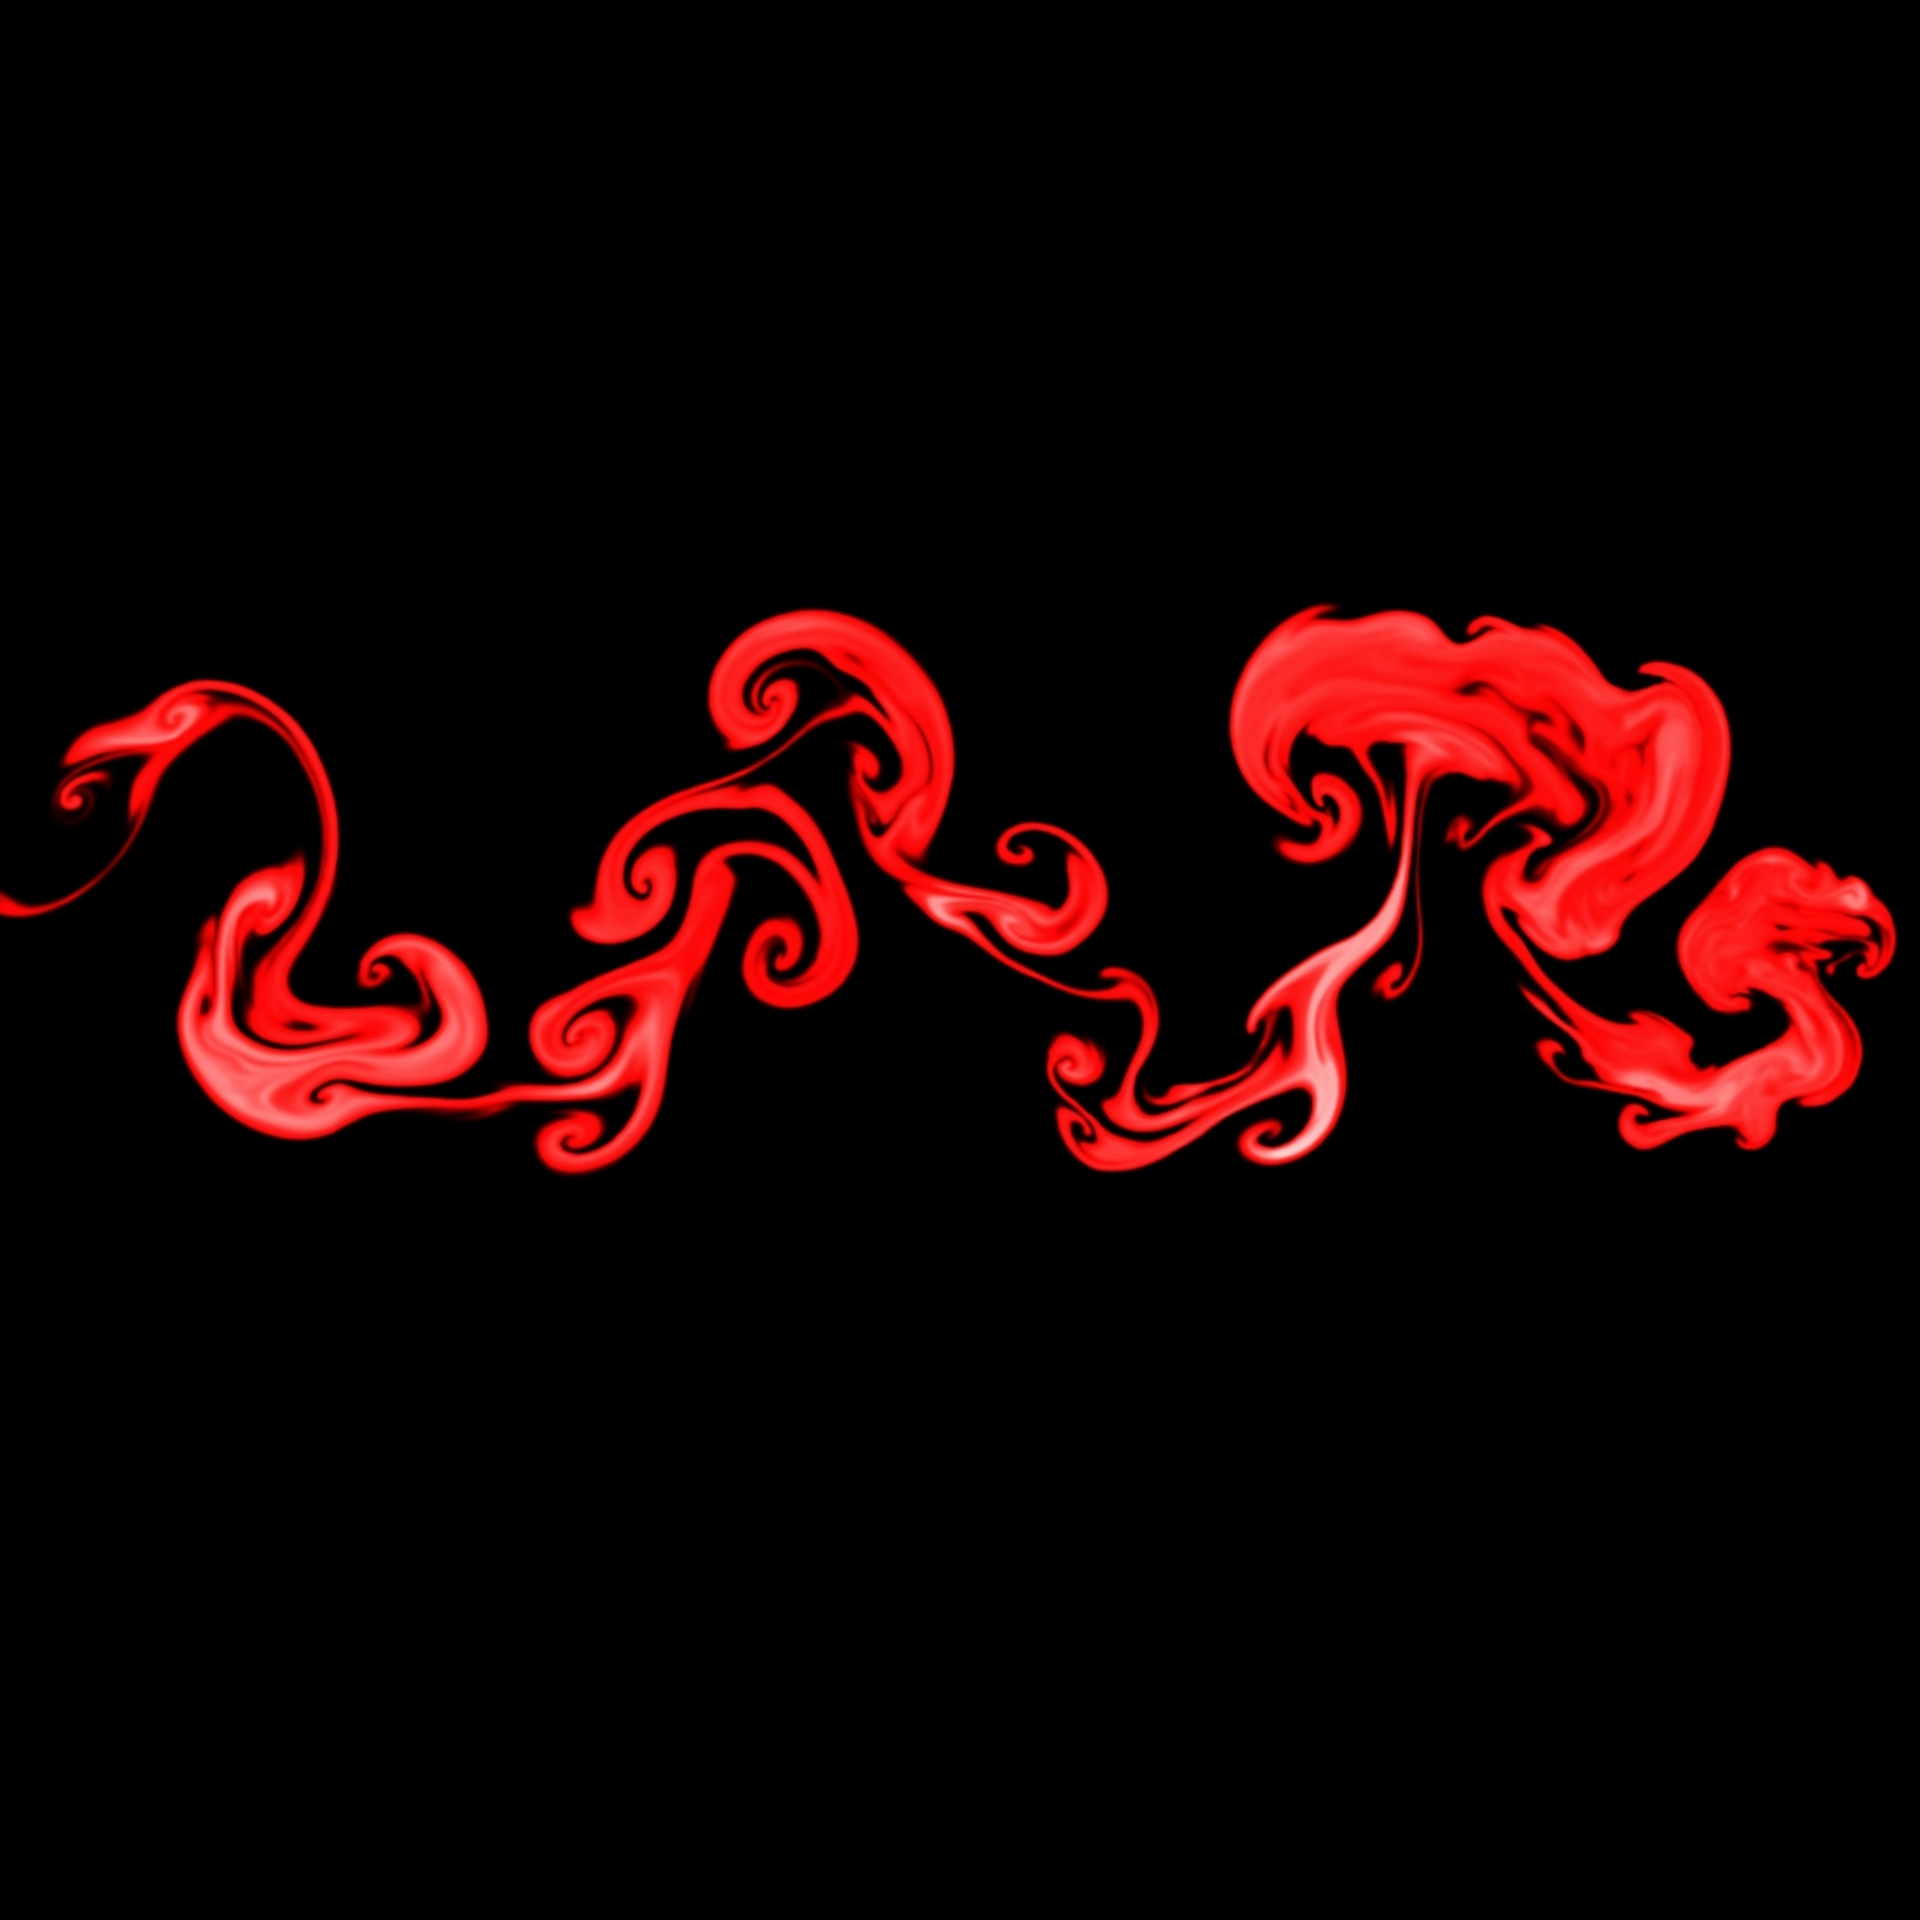 Red Fire Wallpaper Free Picture - Darkness , HD Wallpaper & Backgrounds